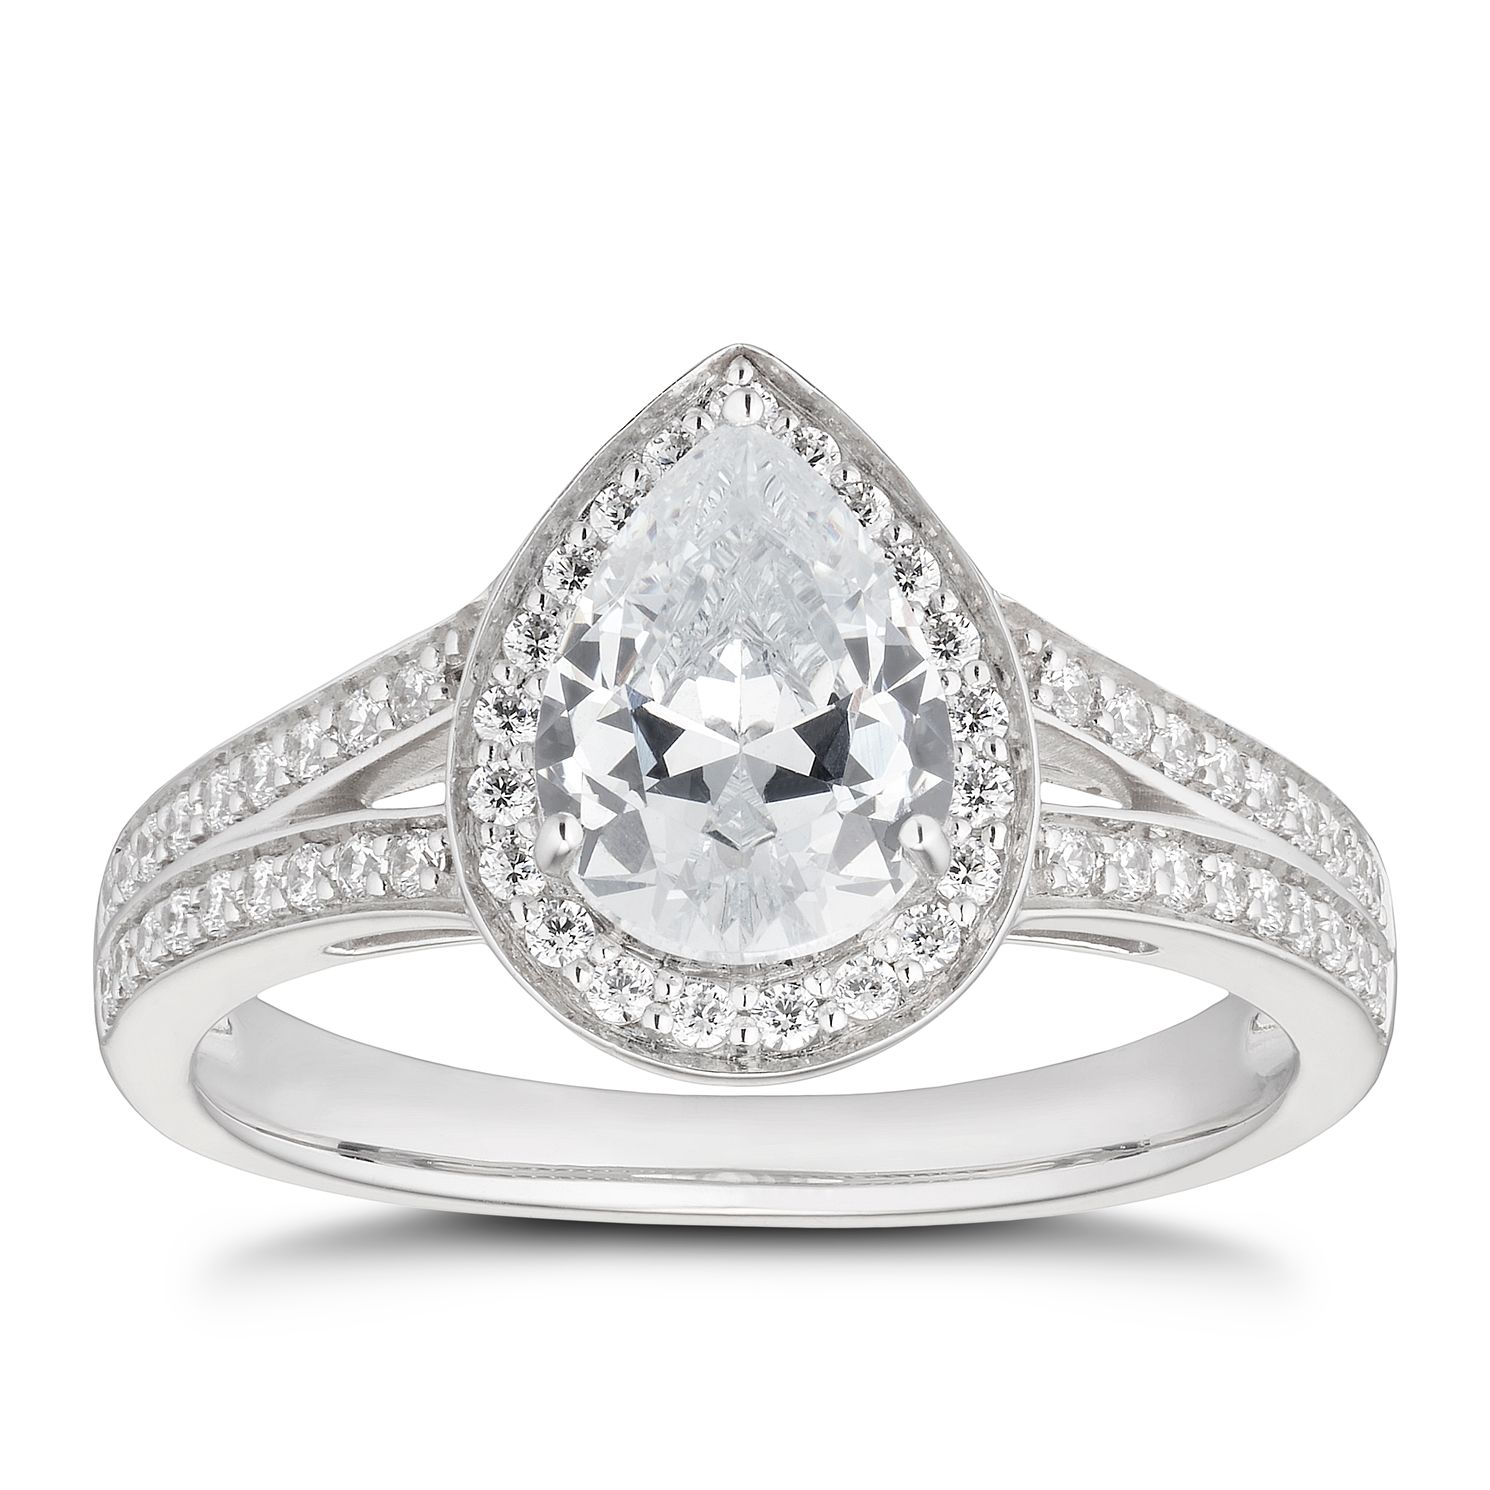 Silver Cubic Zirconia Pear Halo Ring - Product number 5632390